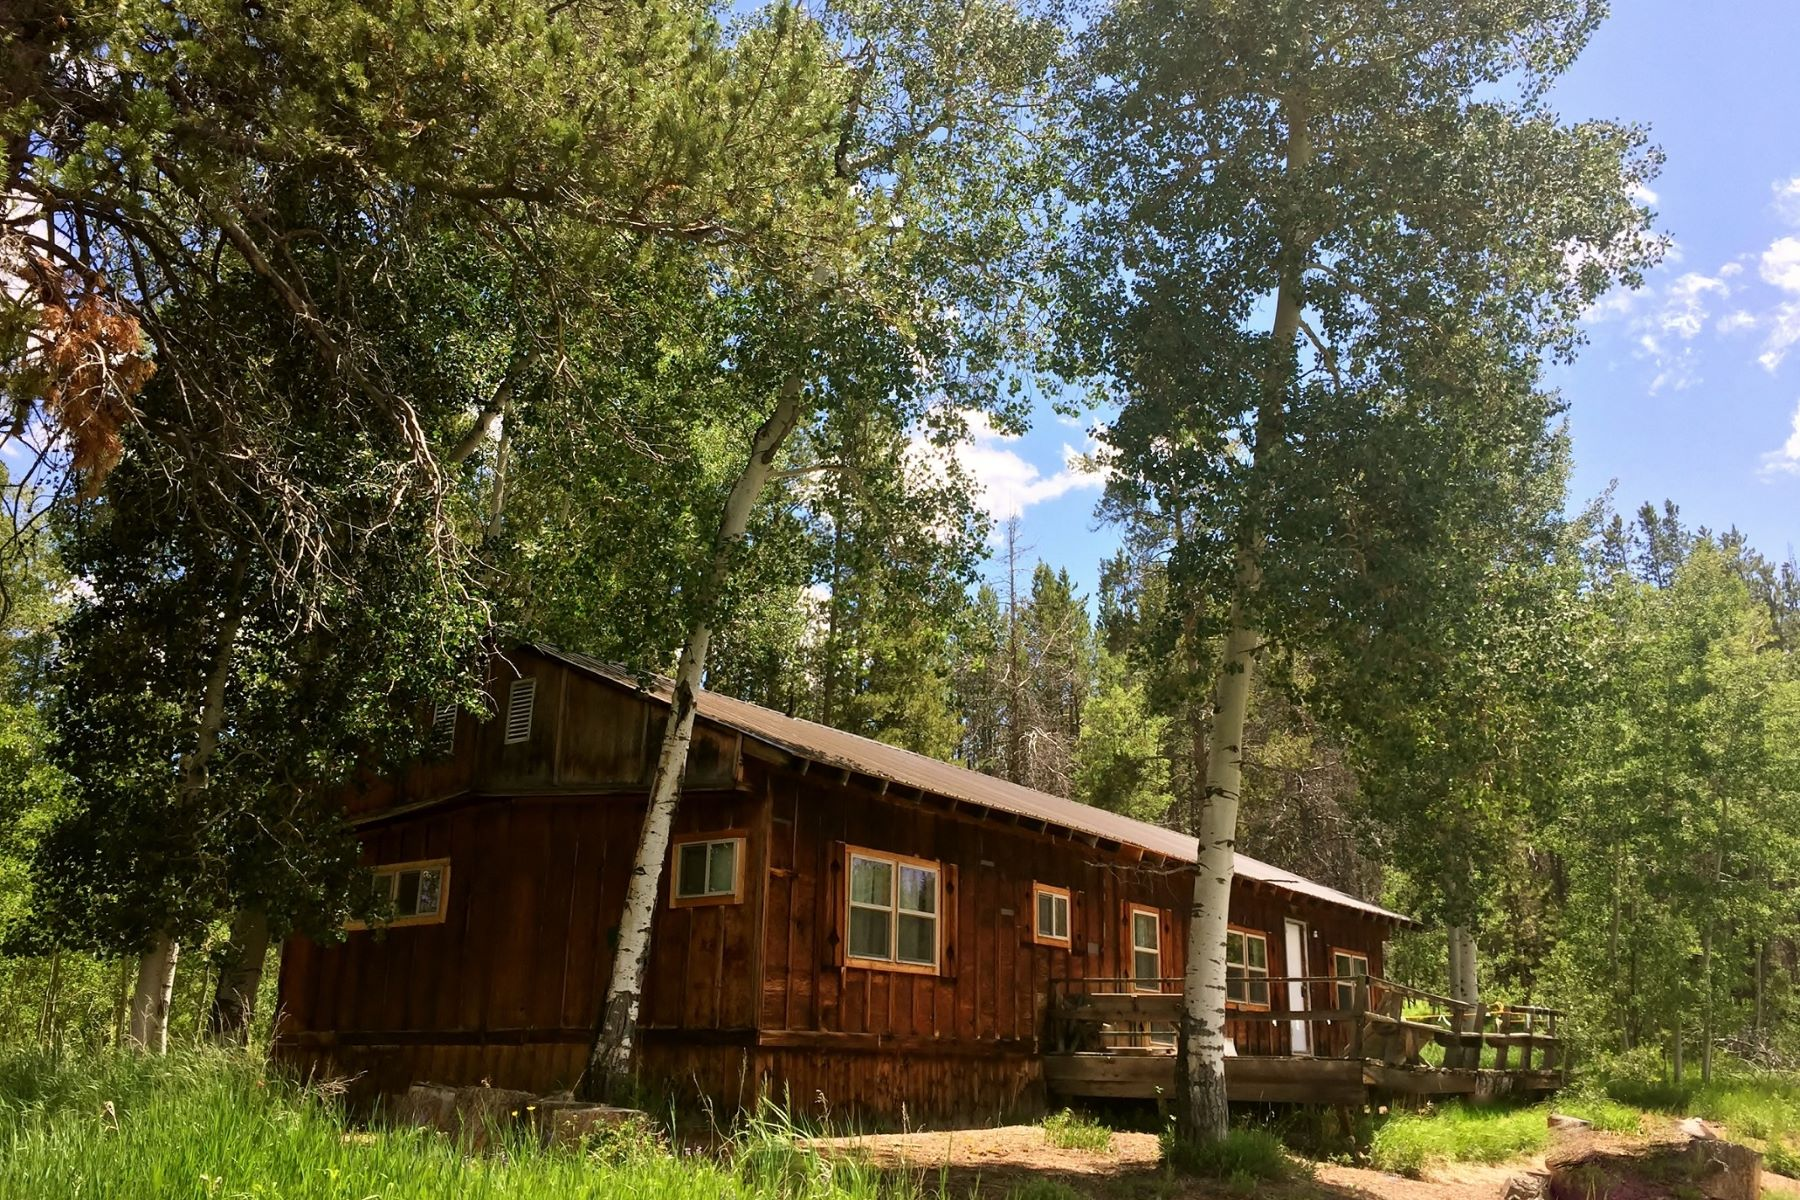 Single Family Homes for Active at Beautiful Wooded Setting 21245 County Road 16 Oak Creek, Colorado 80637 United States